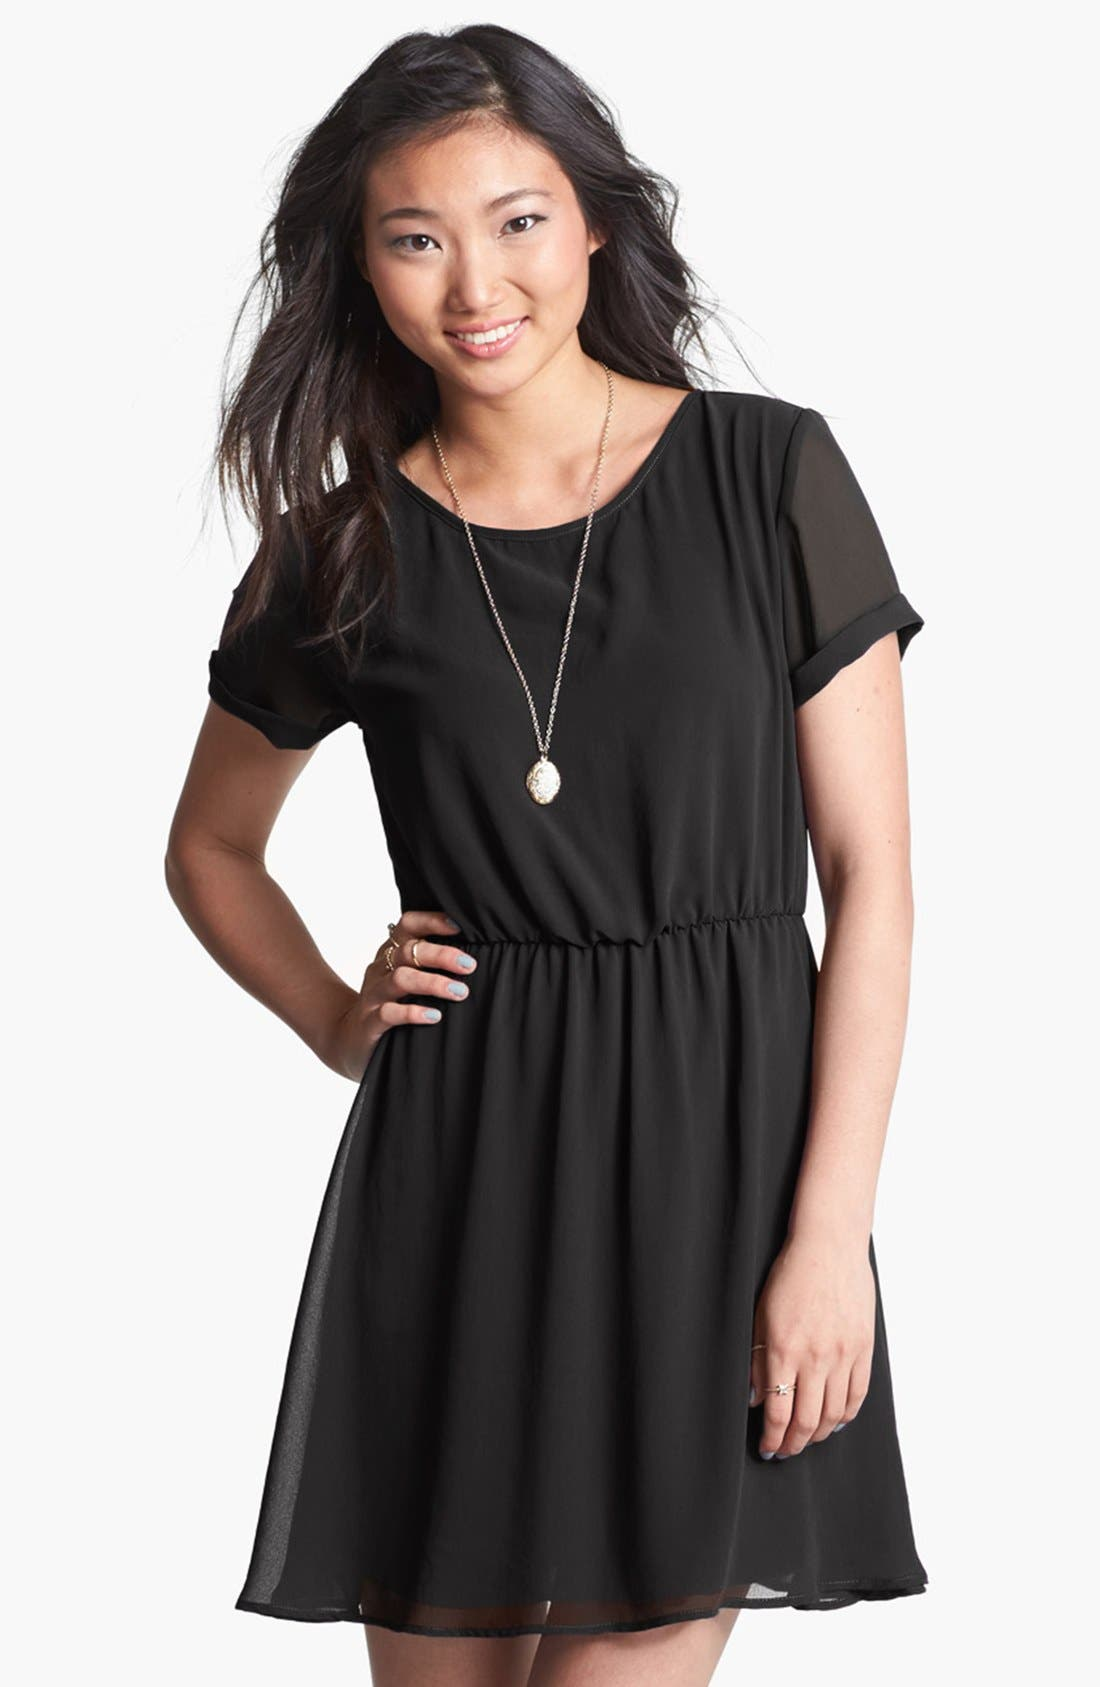 Alternate Image 1 Selected - dee elle 'Milly' Chiffon Skater Dress (Juniors)